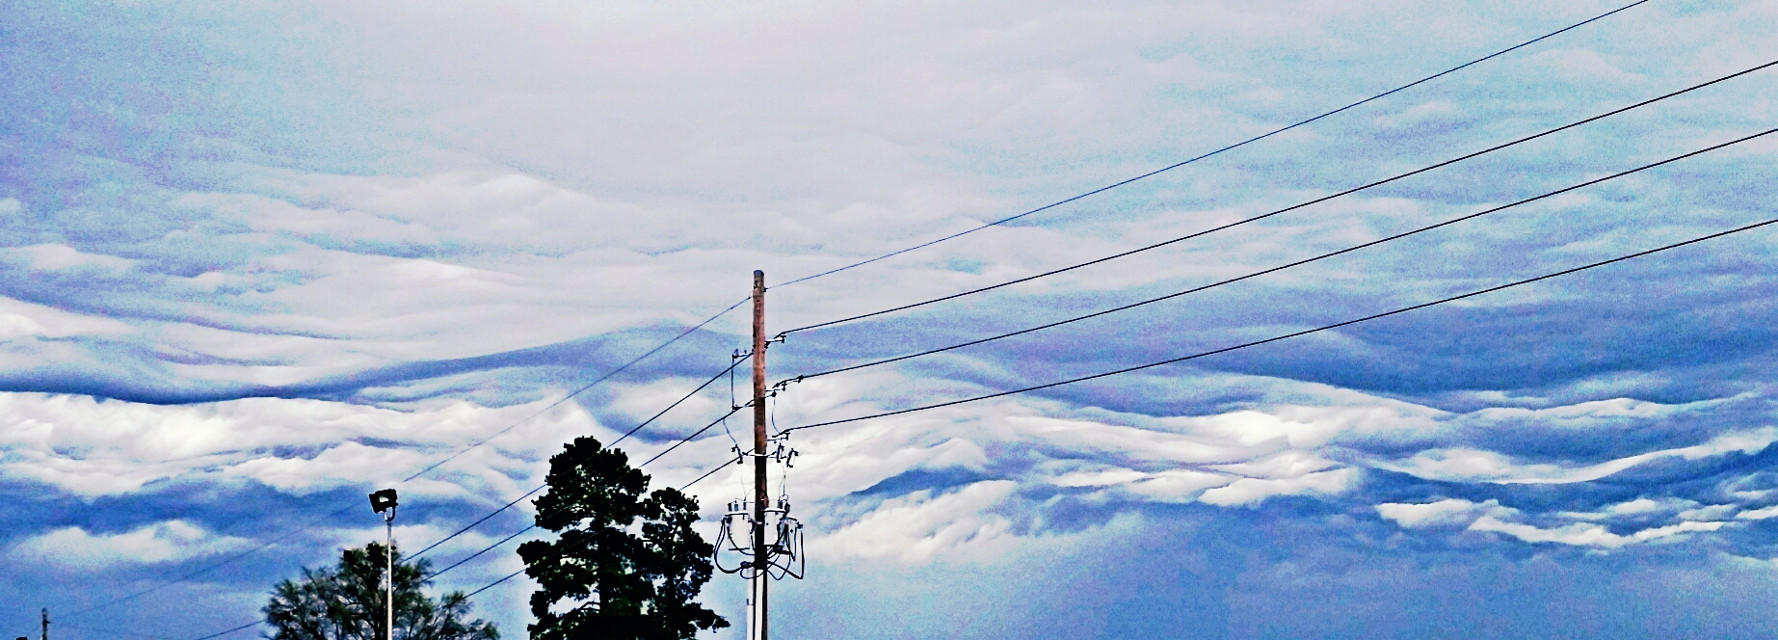 Clouds   #nature #weather